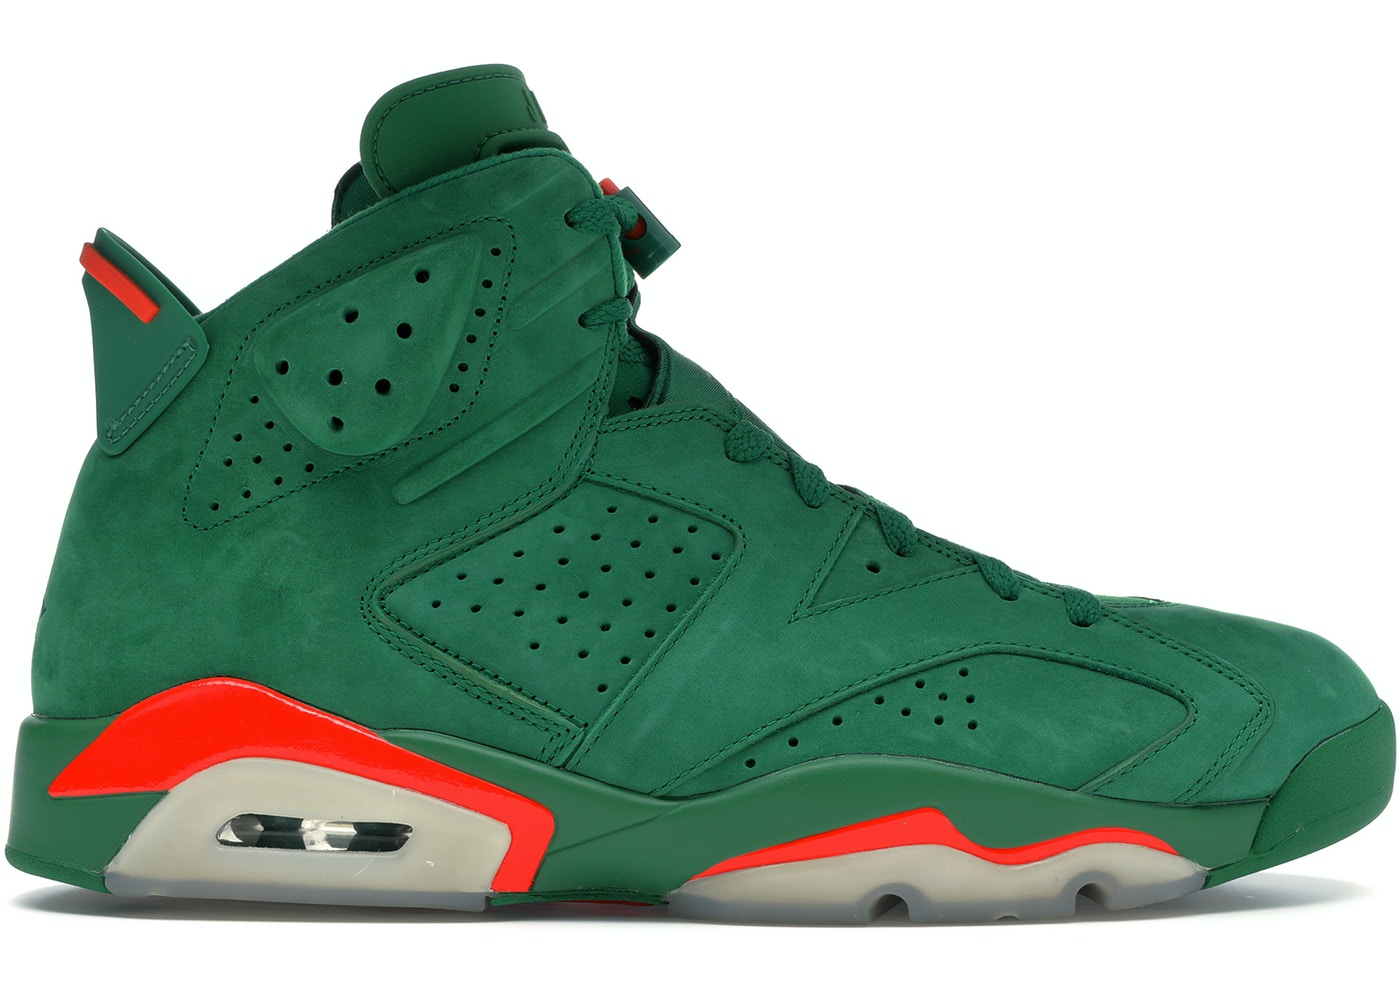 info for 3f9f2 4cef6 Jordan 6 Retro Gatorade Green - AJ5986-335